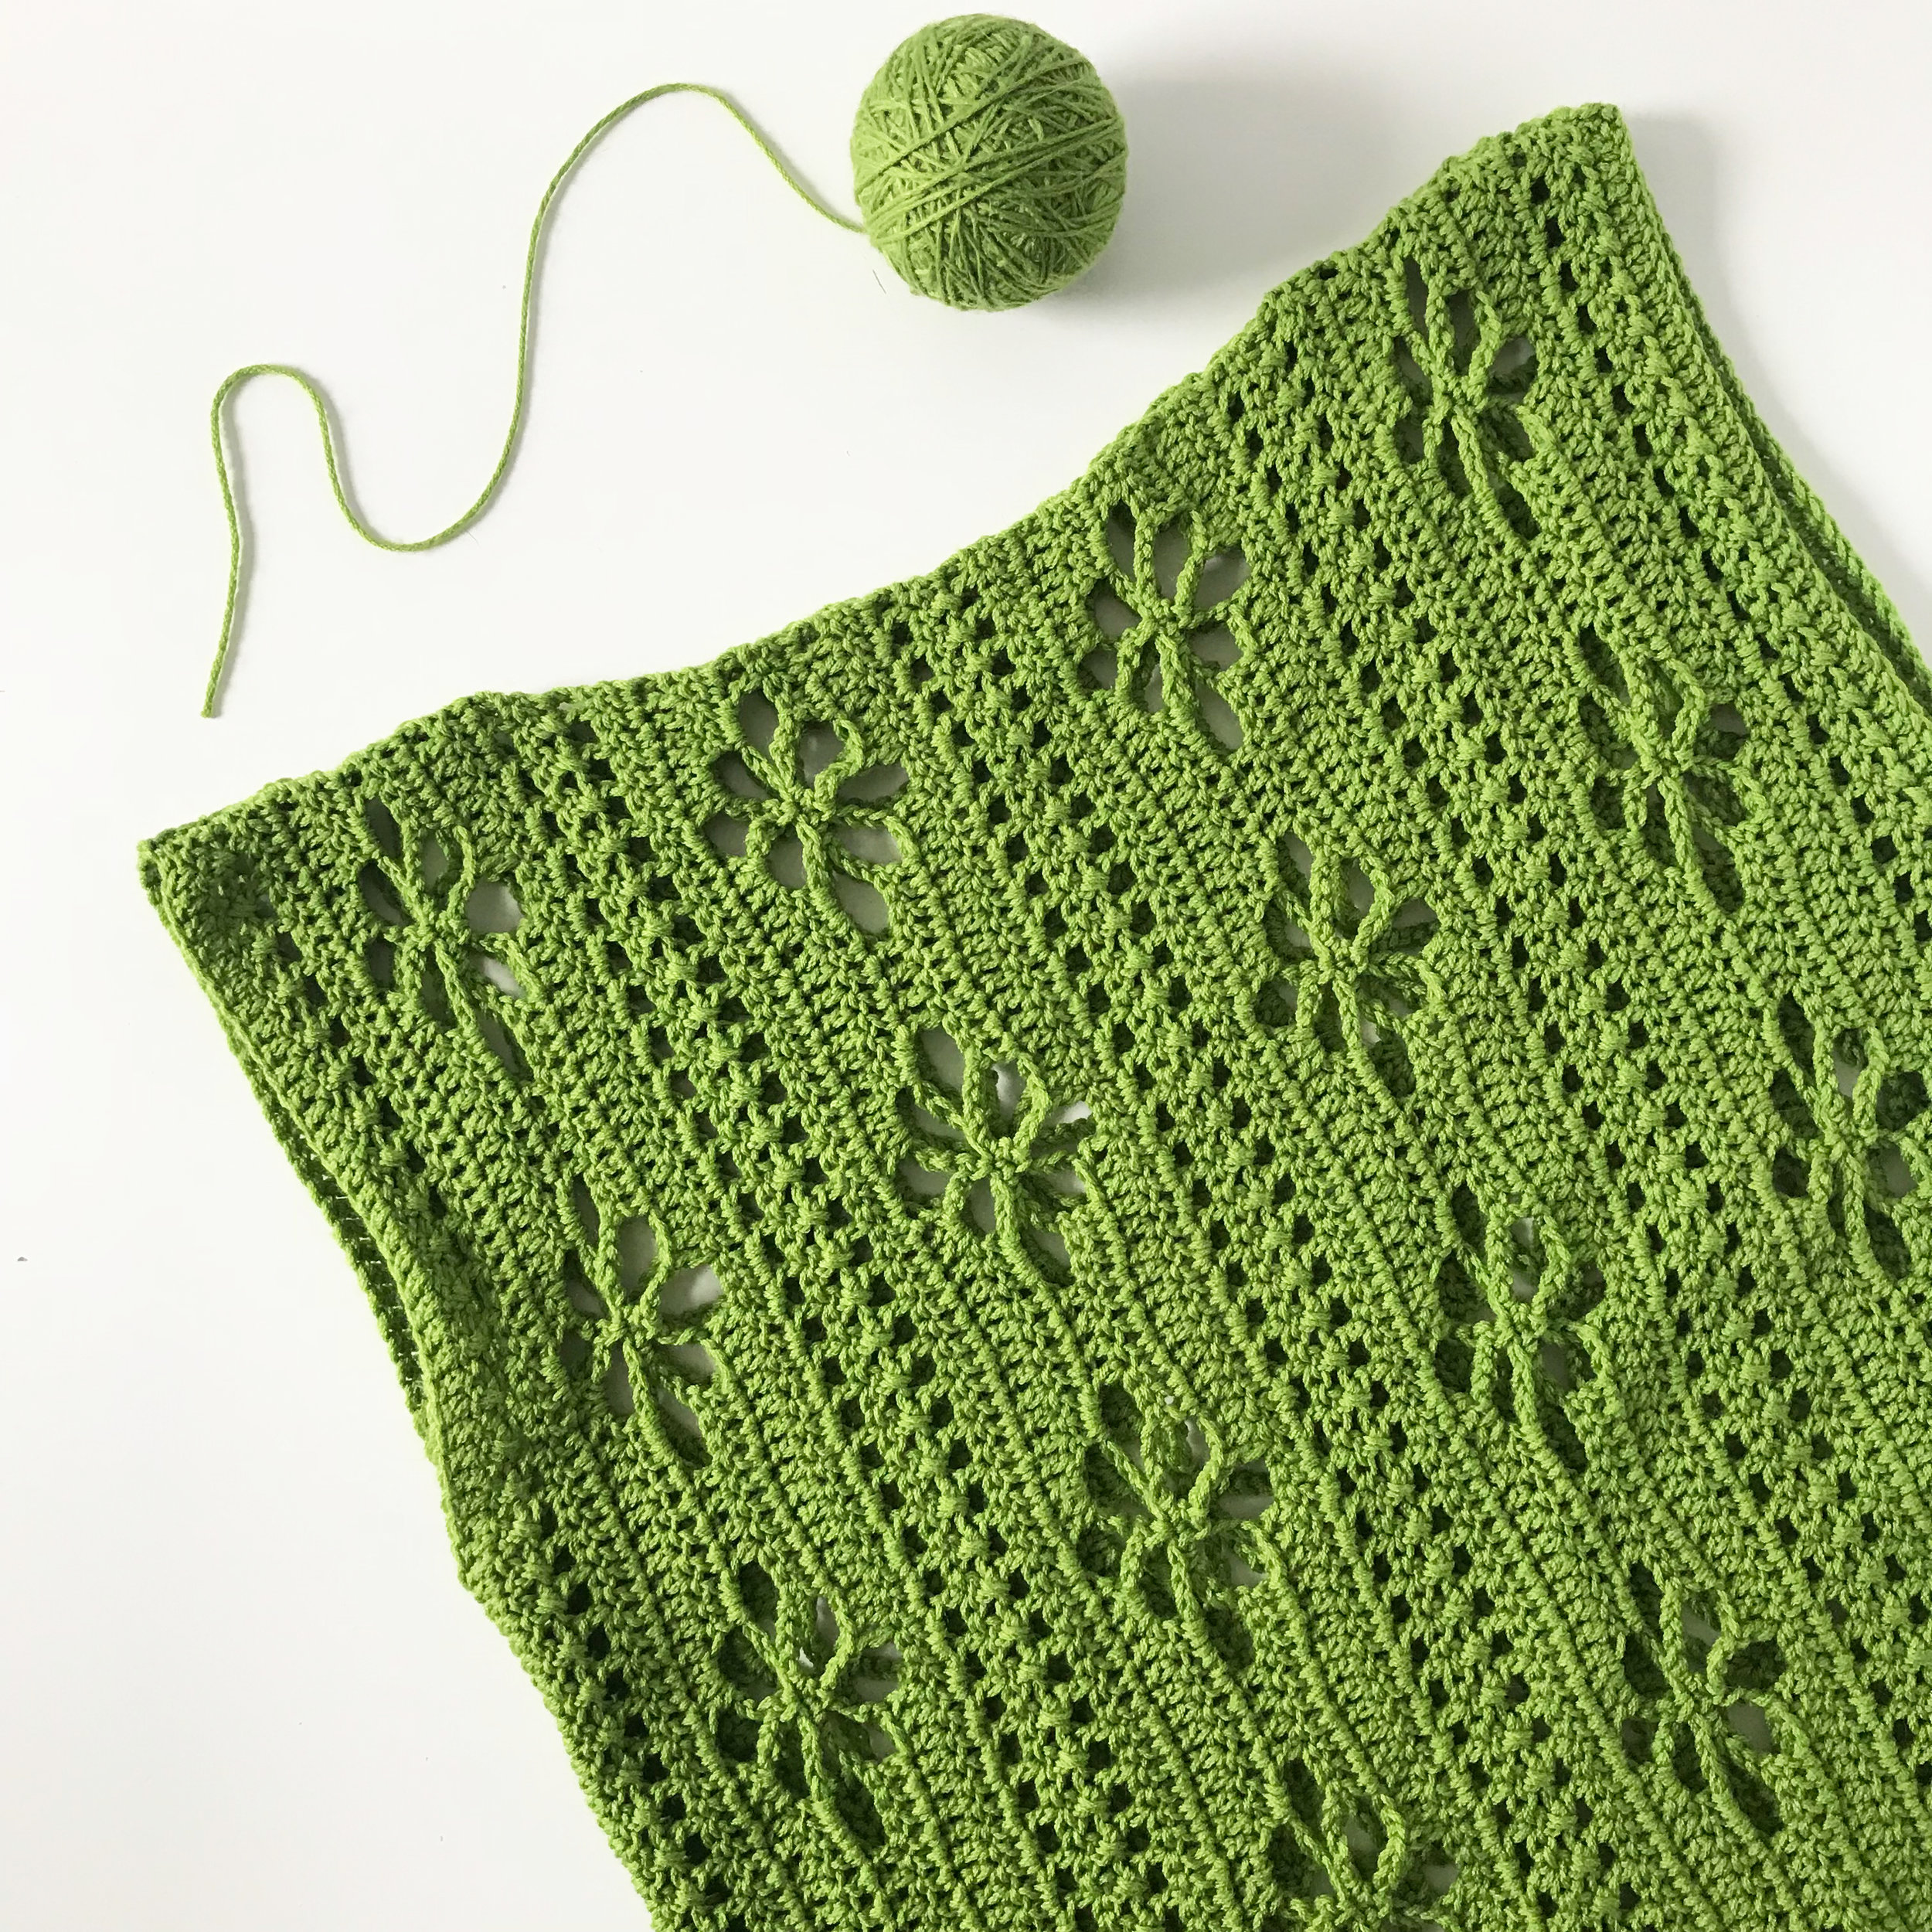 A Top I Crocheted Using One Dog Woof's Wildflowers Tunic Pattern